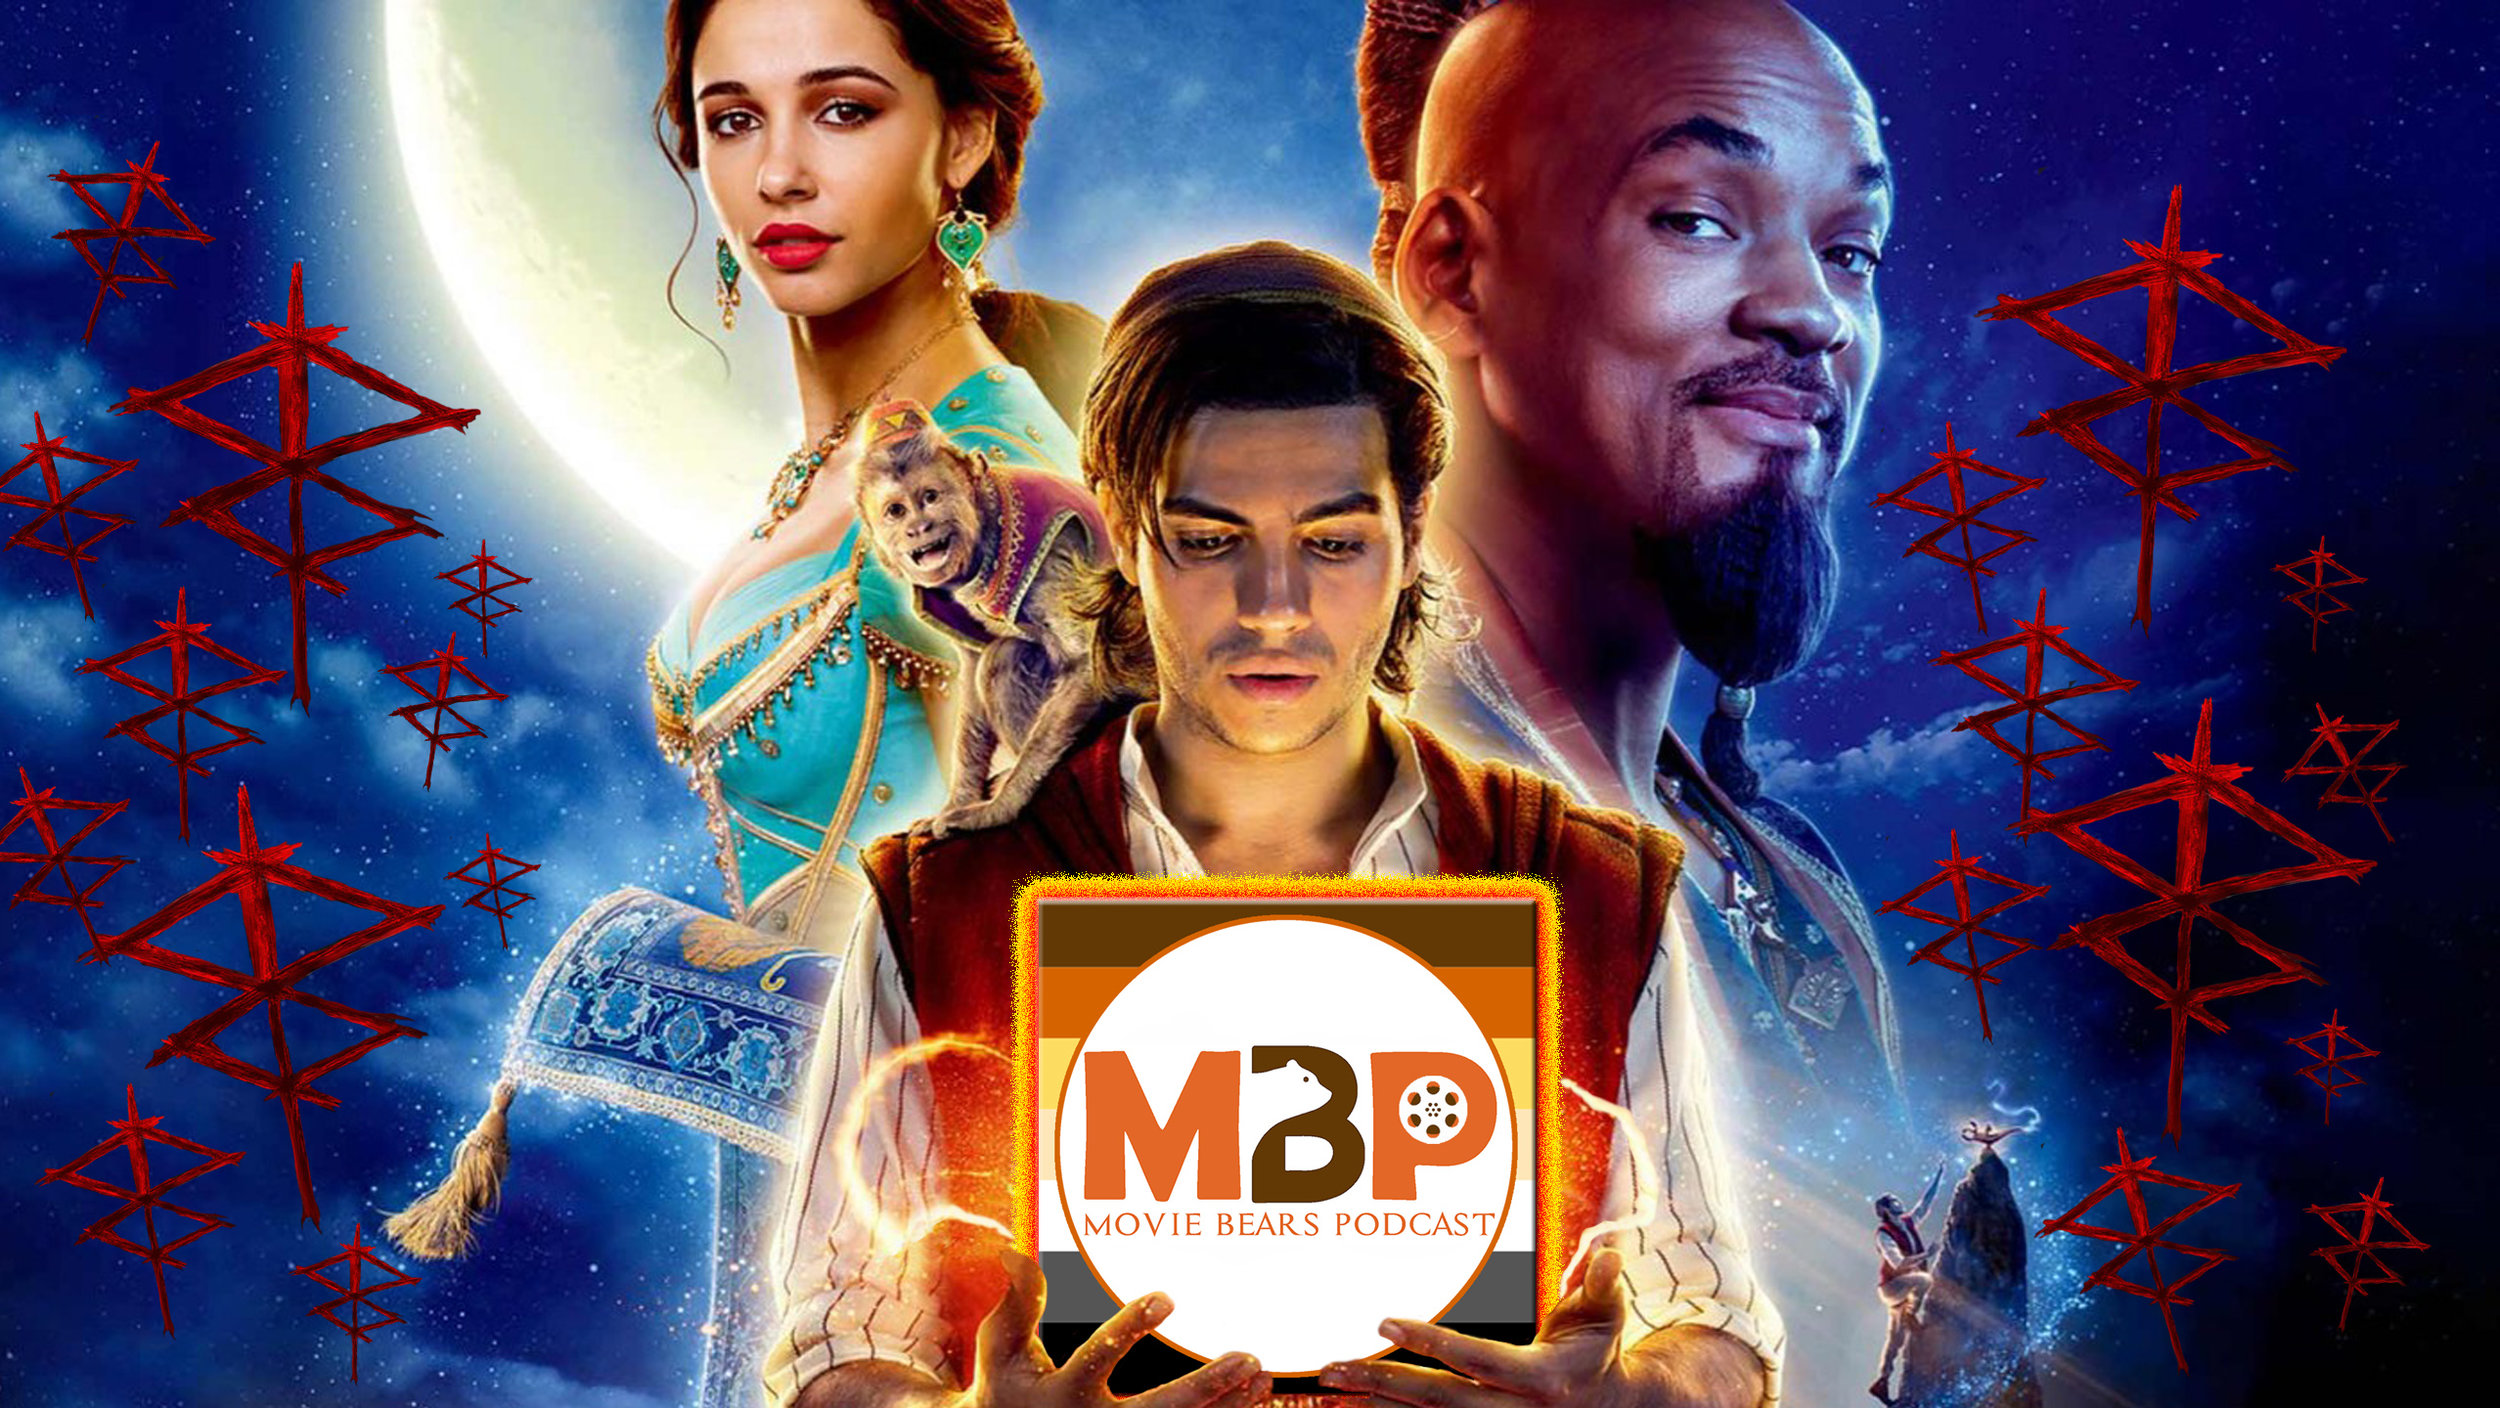 MBP e325 - 'Aladdin' and 'Brightburn' (5/28/19)    On this episode of MBP we're exploring a whole new world of films with TWO live reviews! First, we're talking about Disney's 'Aladdin,' the remake of Disney's 'Aladdin.' Then, we check out 'Brightburn,' a new kind of horror film that asks the question 'What if Superman, but evil?' Lots to talk about, so listen in to hear what these bears have to say!